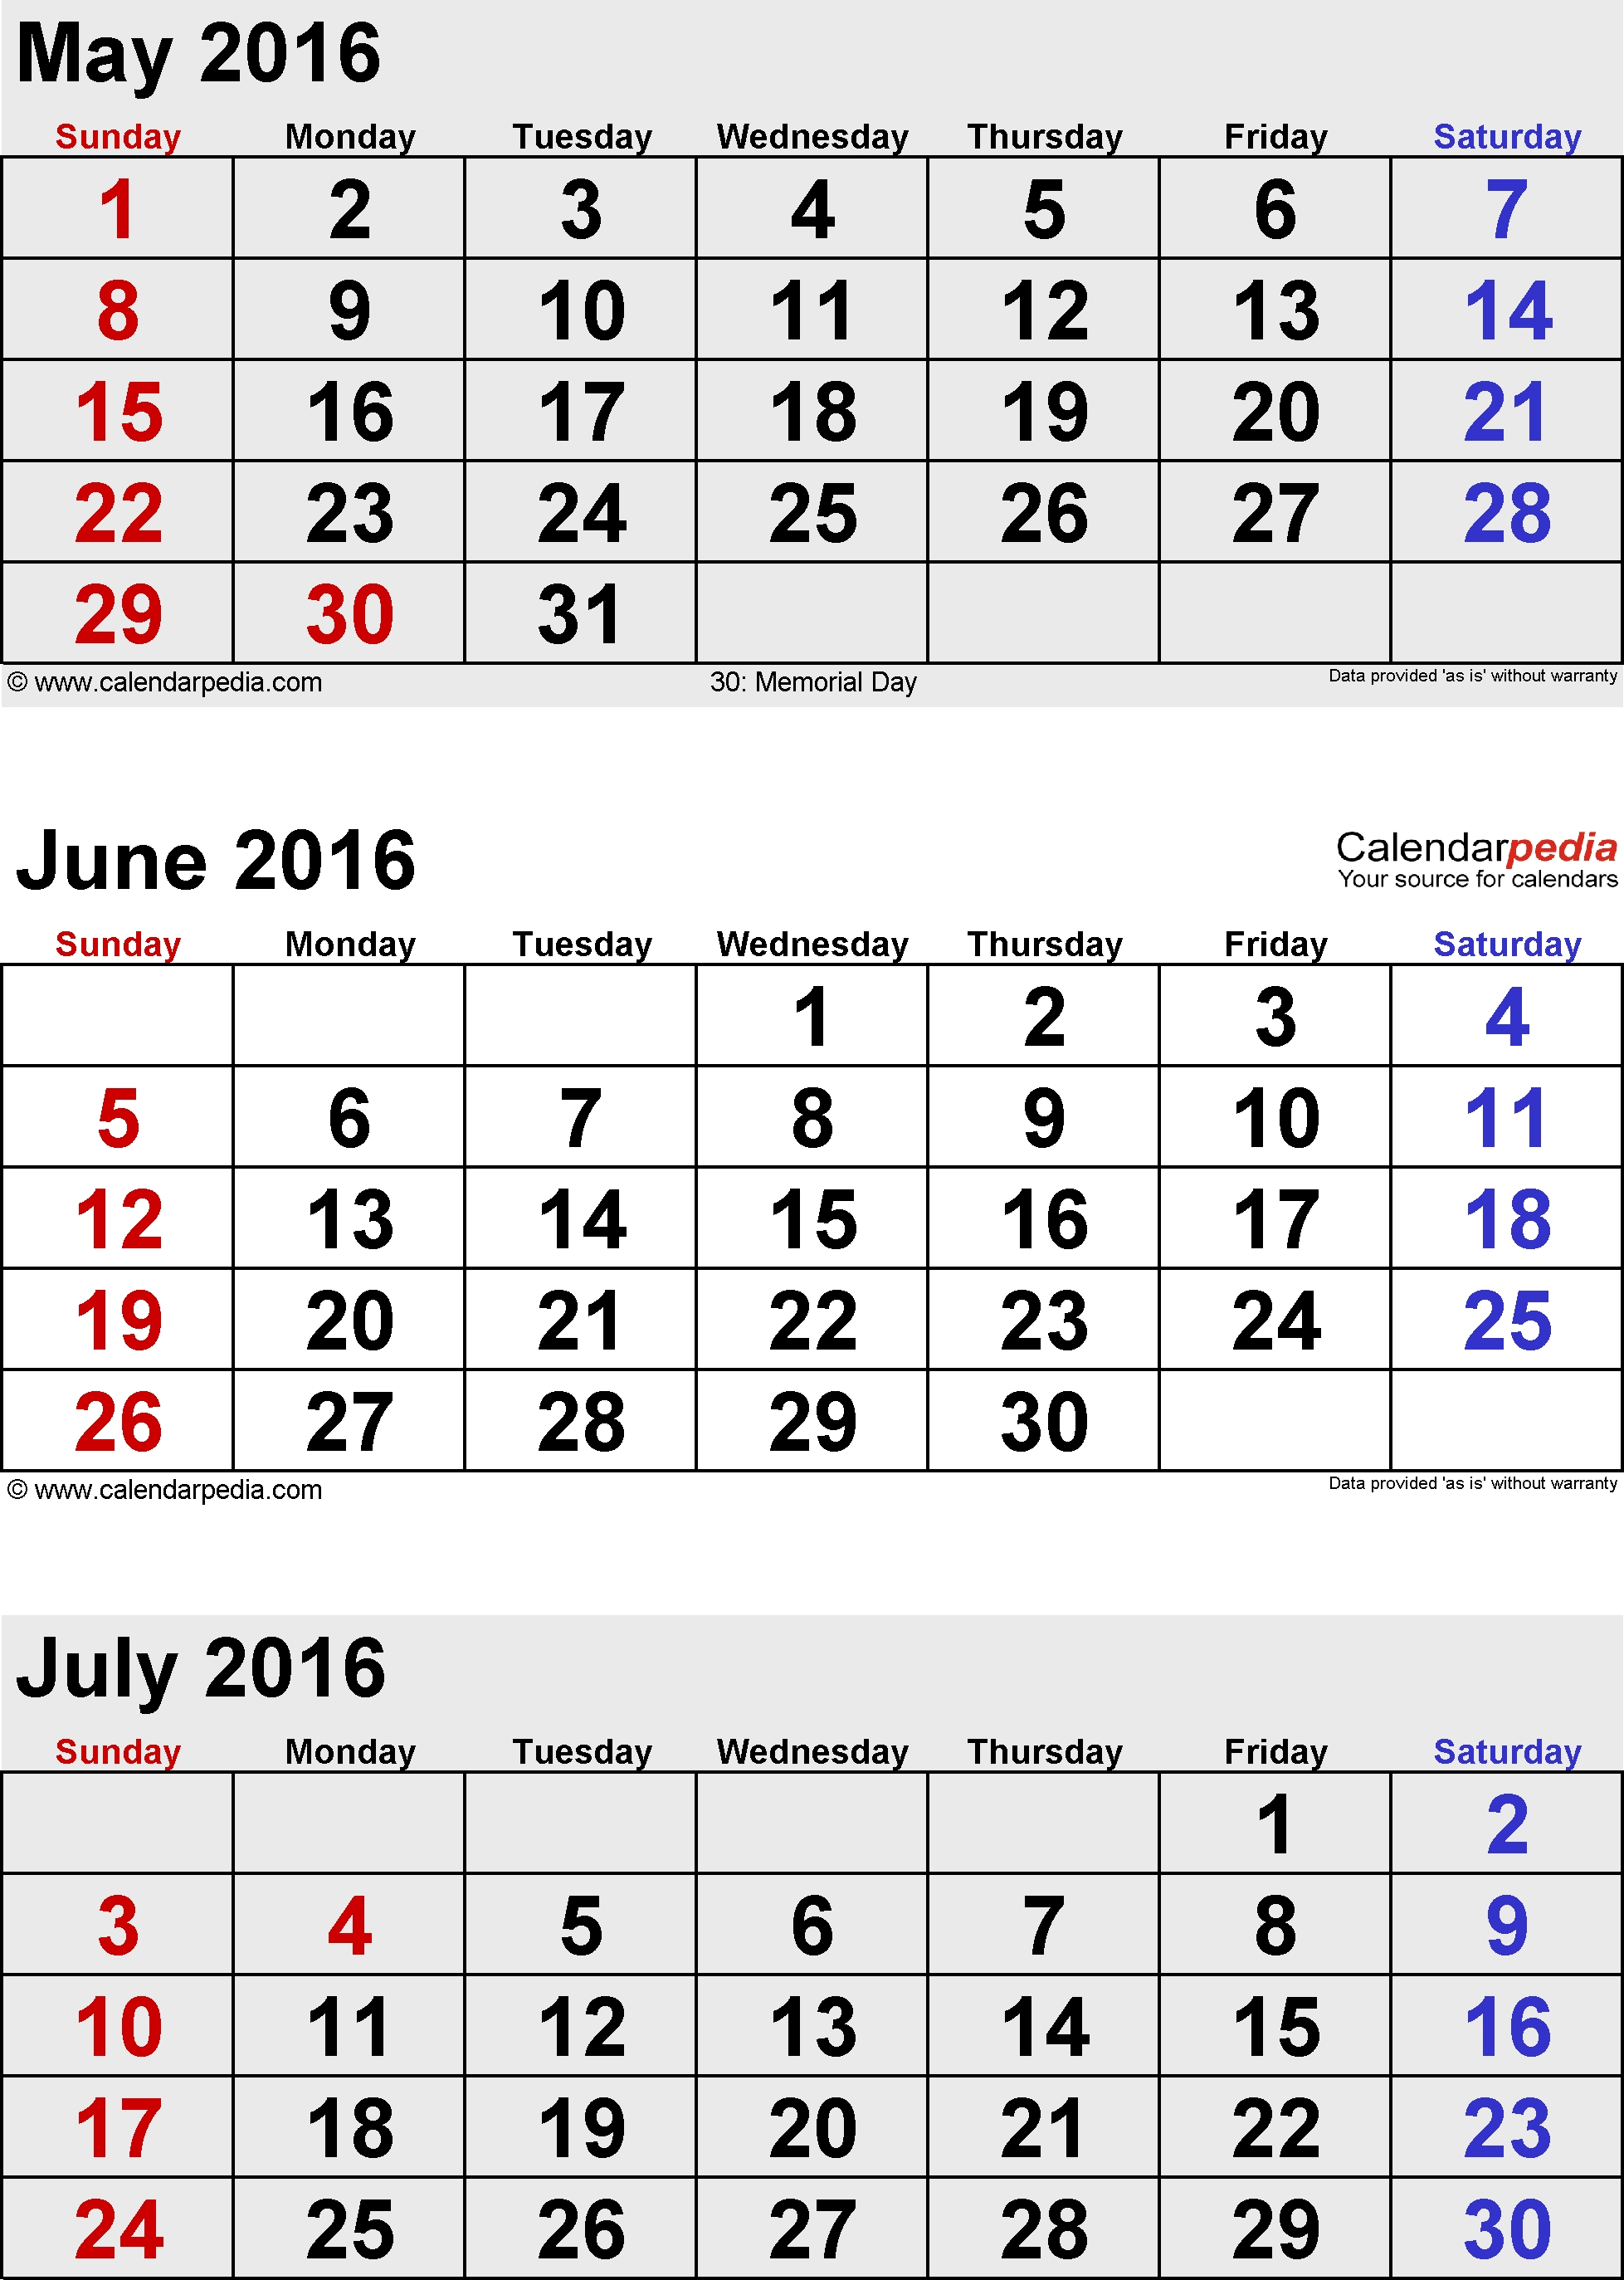 July 2016 Calendars For Word, Excel & Pdf 3 Month Calendar With Holidays